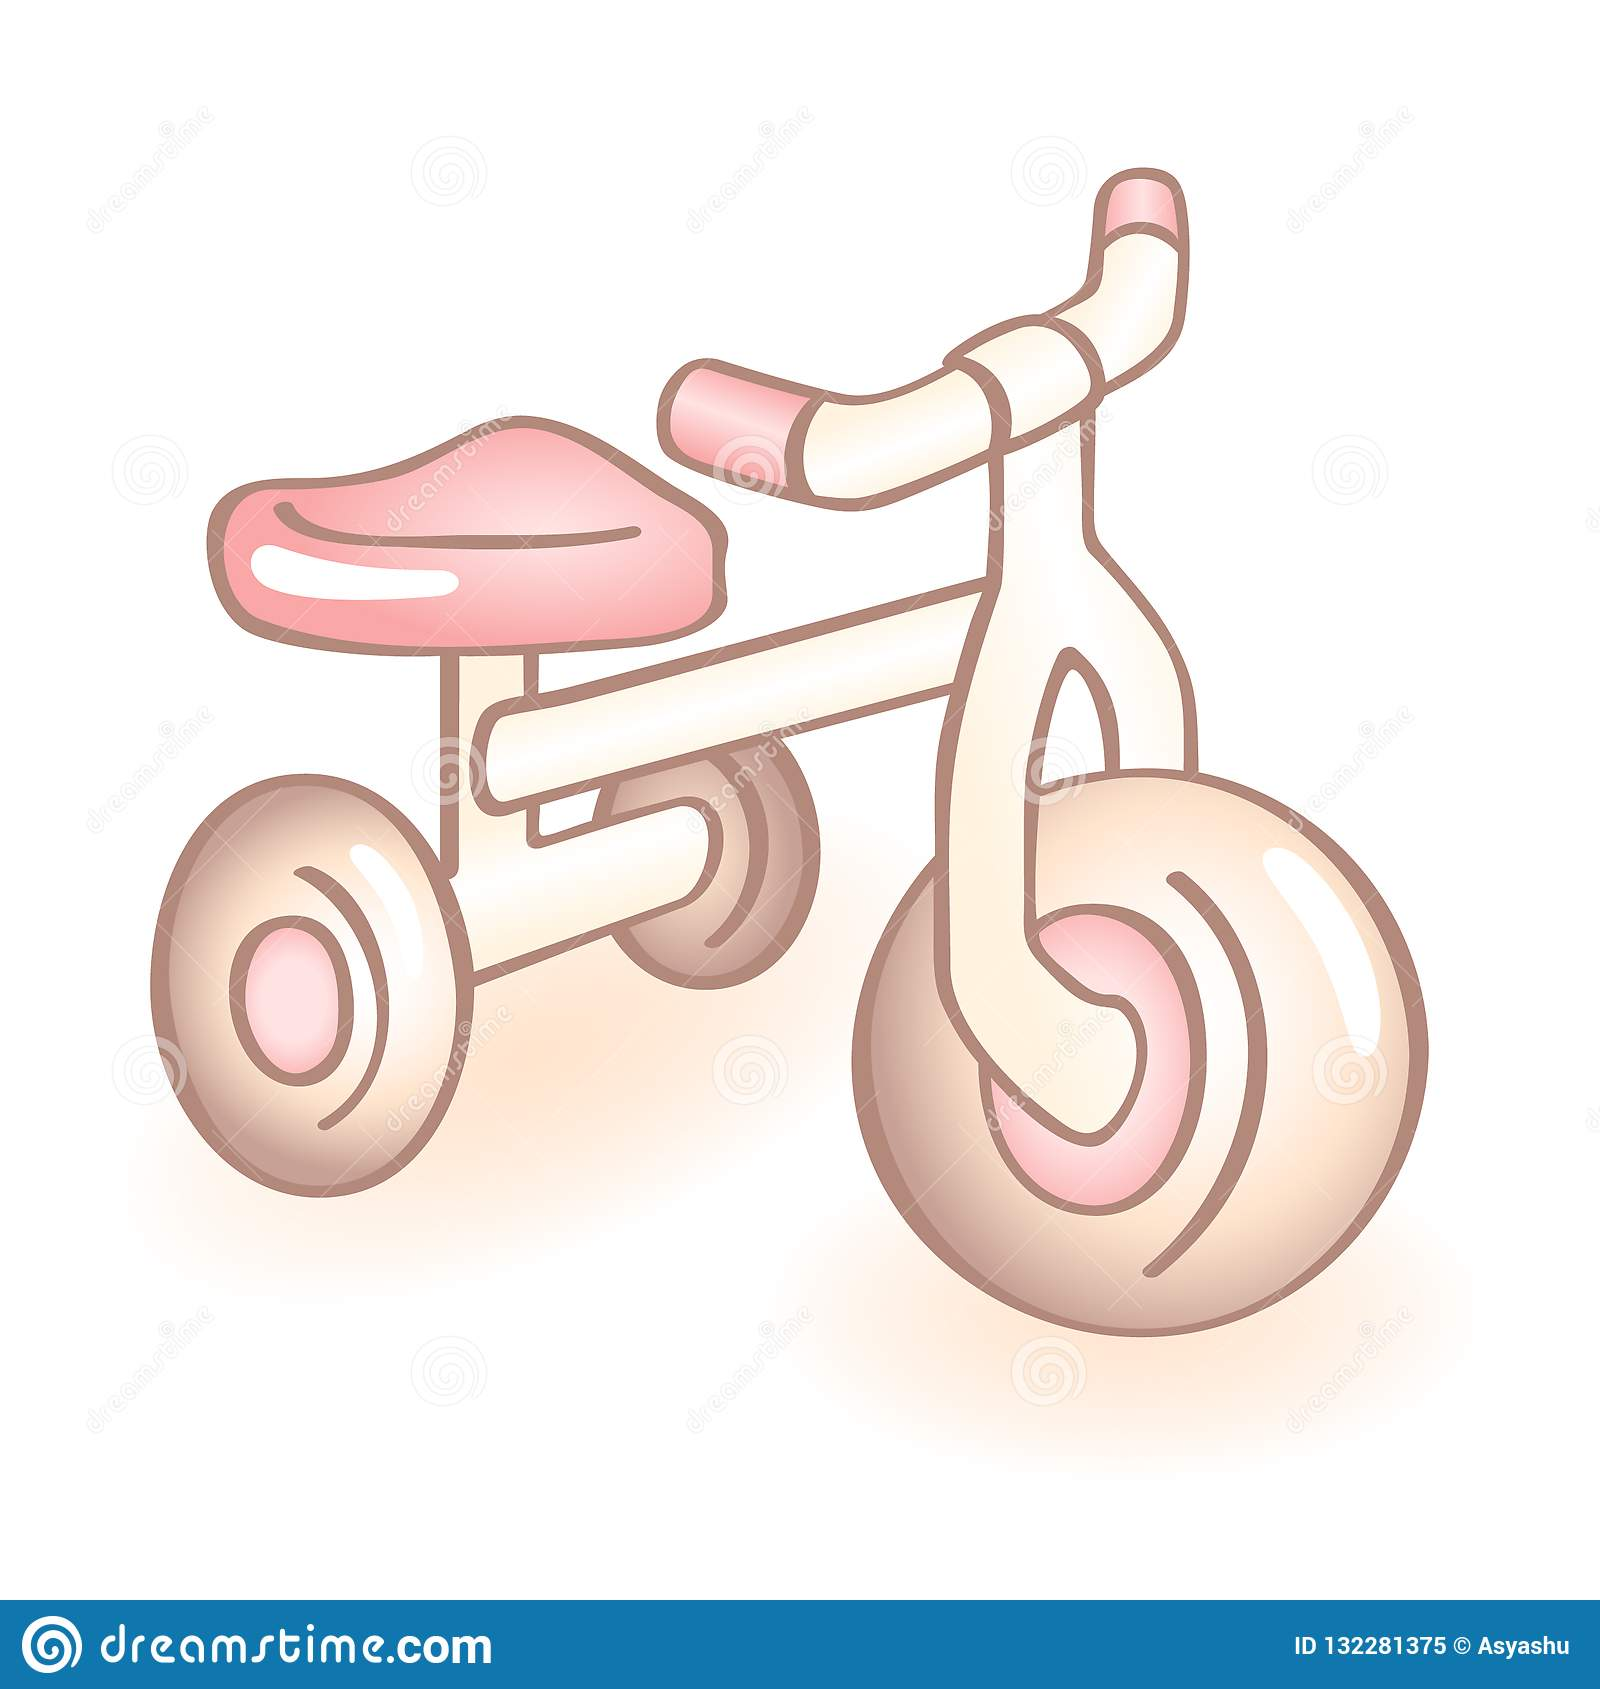 New Born Baby Bike With Three Wheels Tricycle With Pink Details Infant Vector Icon Child Item Stock Illustration Illustration Of Isolated Item 132281375